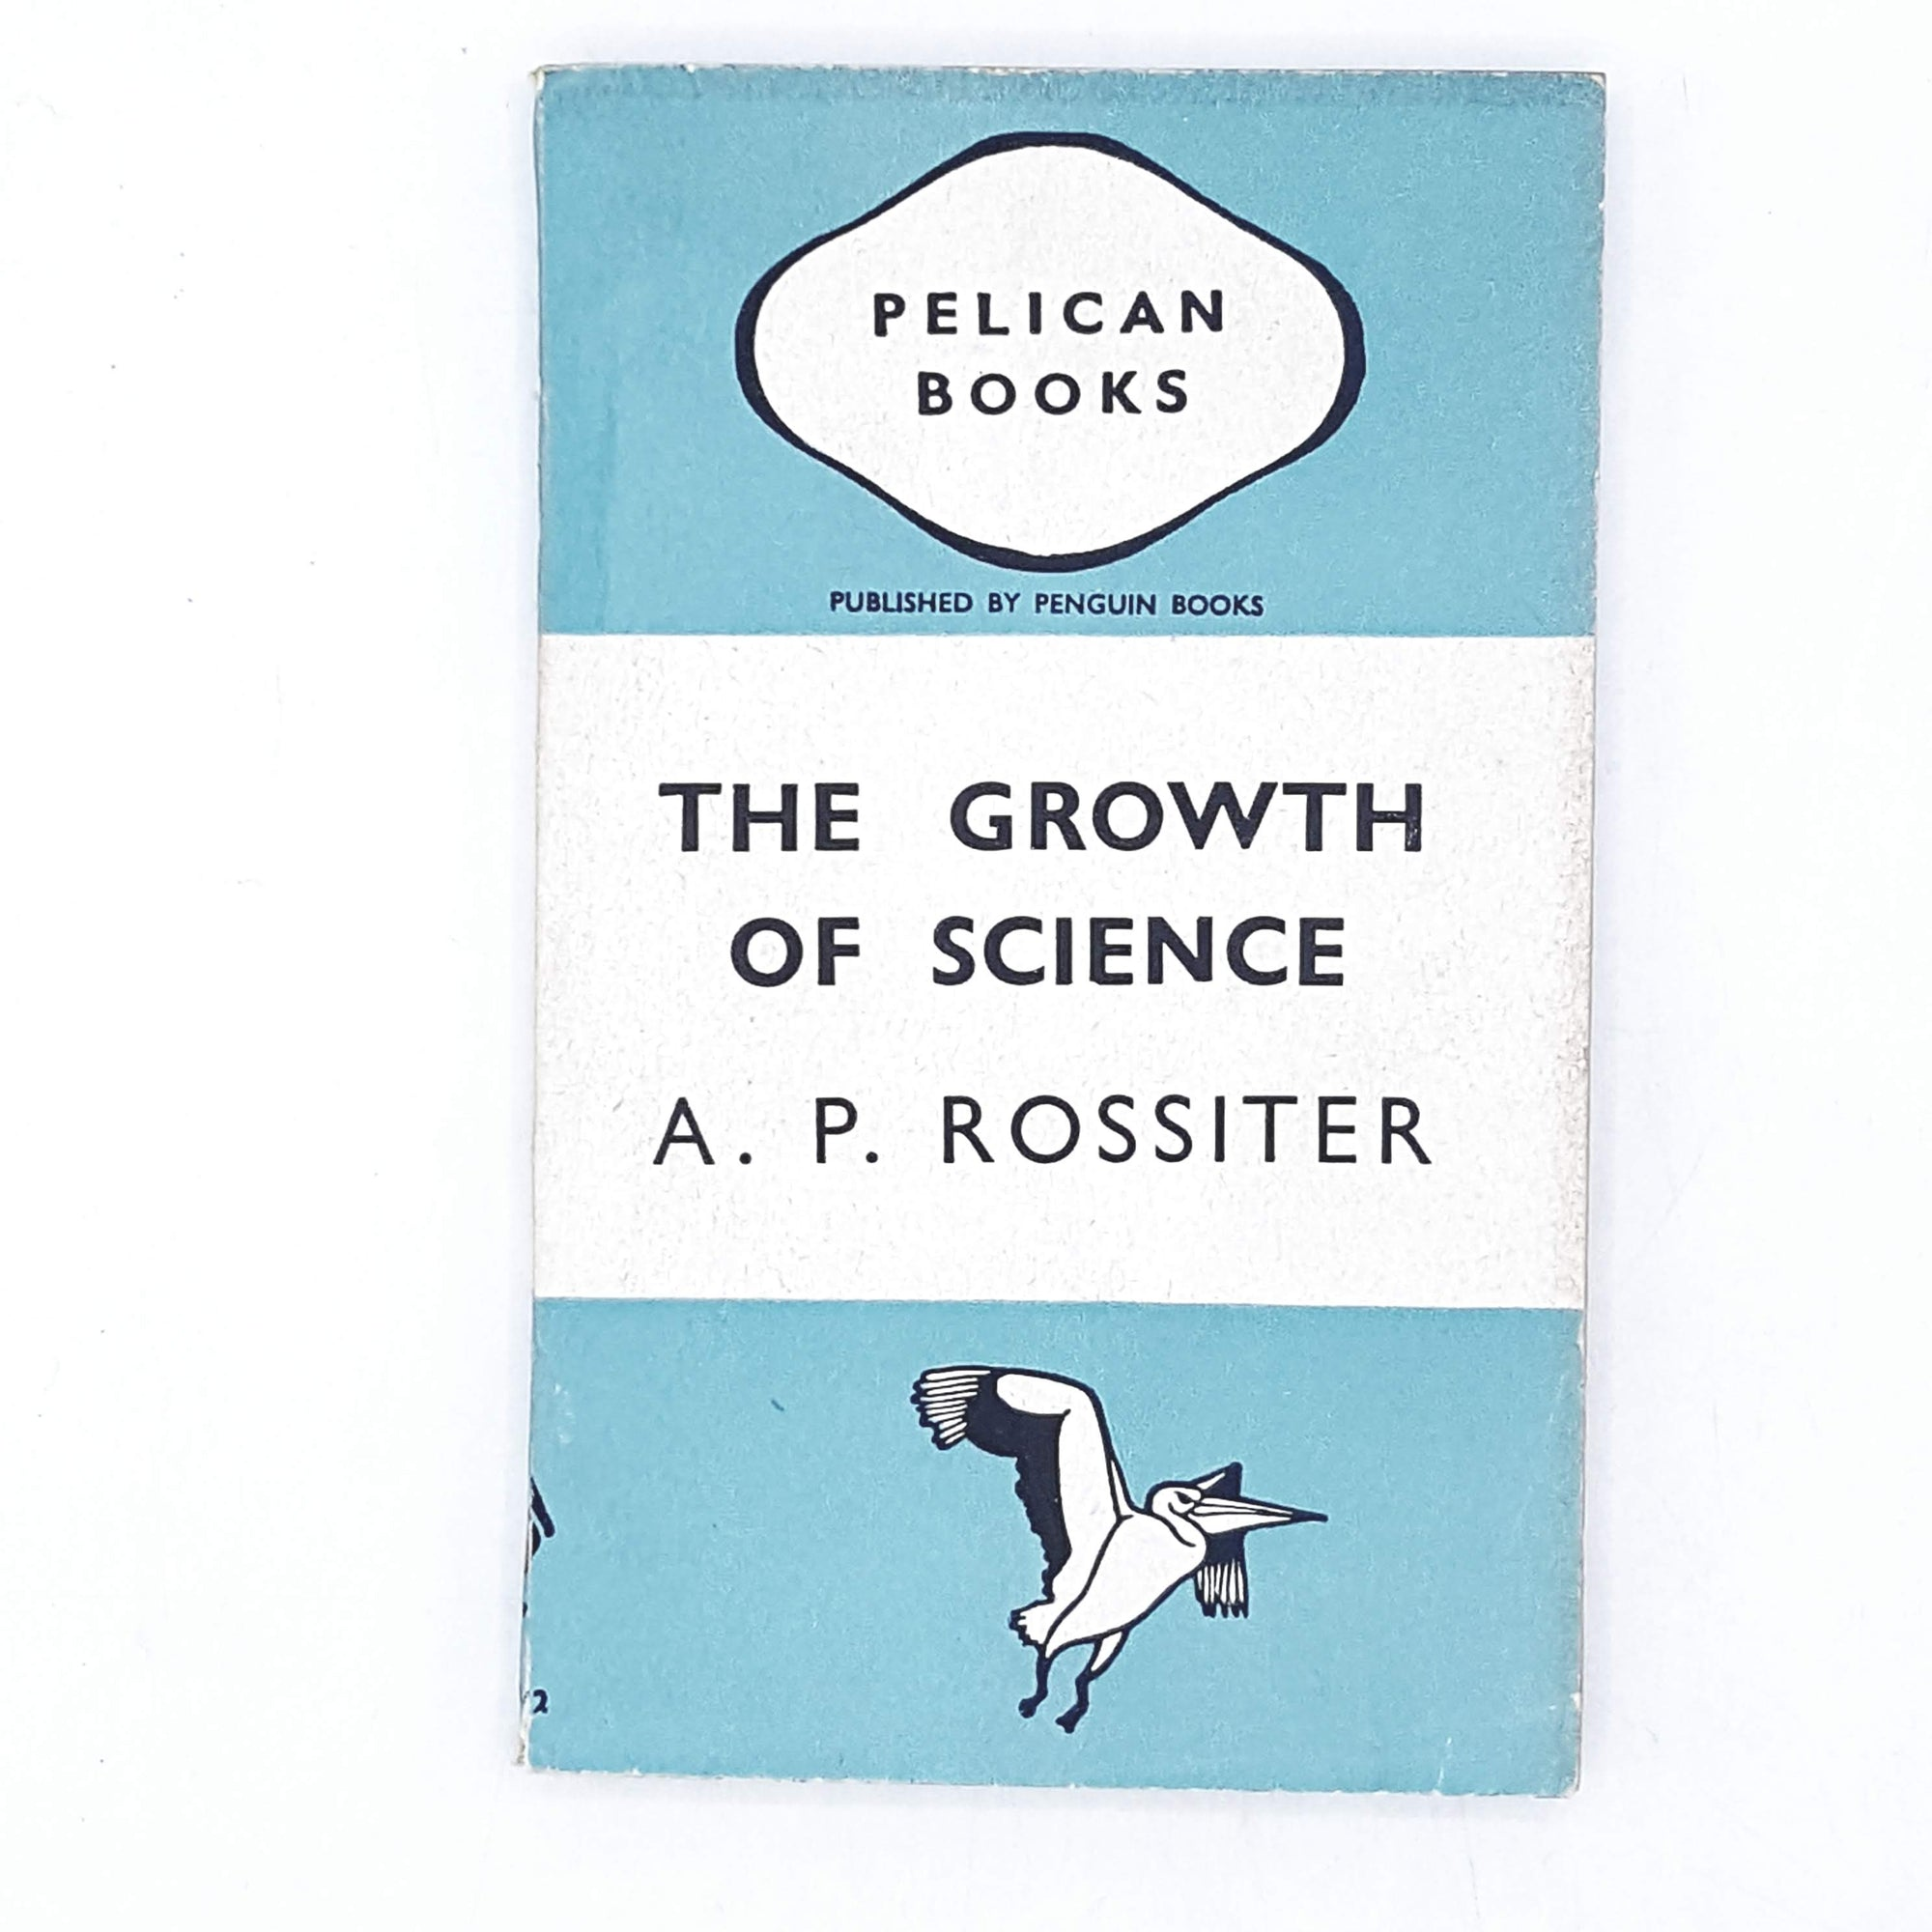 The Growth of Science by A. P. Rossiter 1943